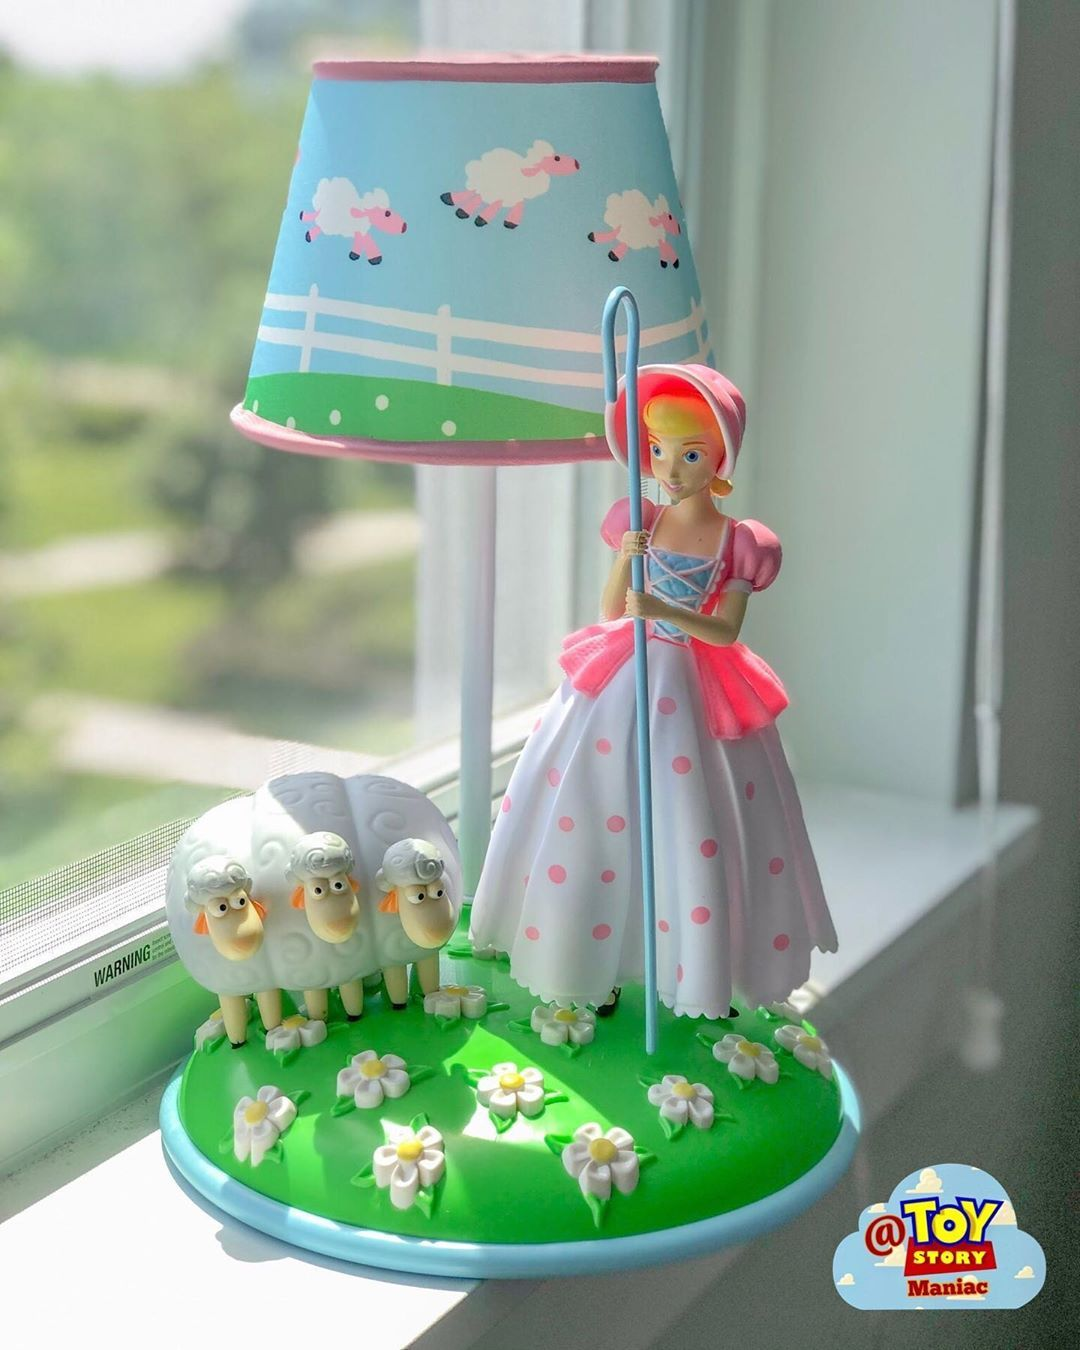 Toystory Maniac On Instagram This Is One Of The Most Stunning Piece That I Have In My Collection This Bo Peep Lamp Is Ev Toy Story Room Bo Peep Toy Story